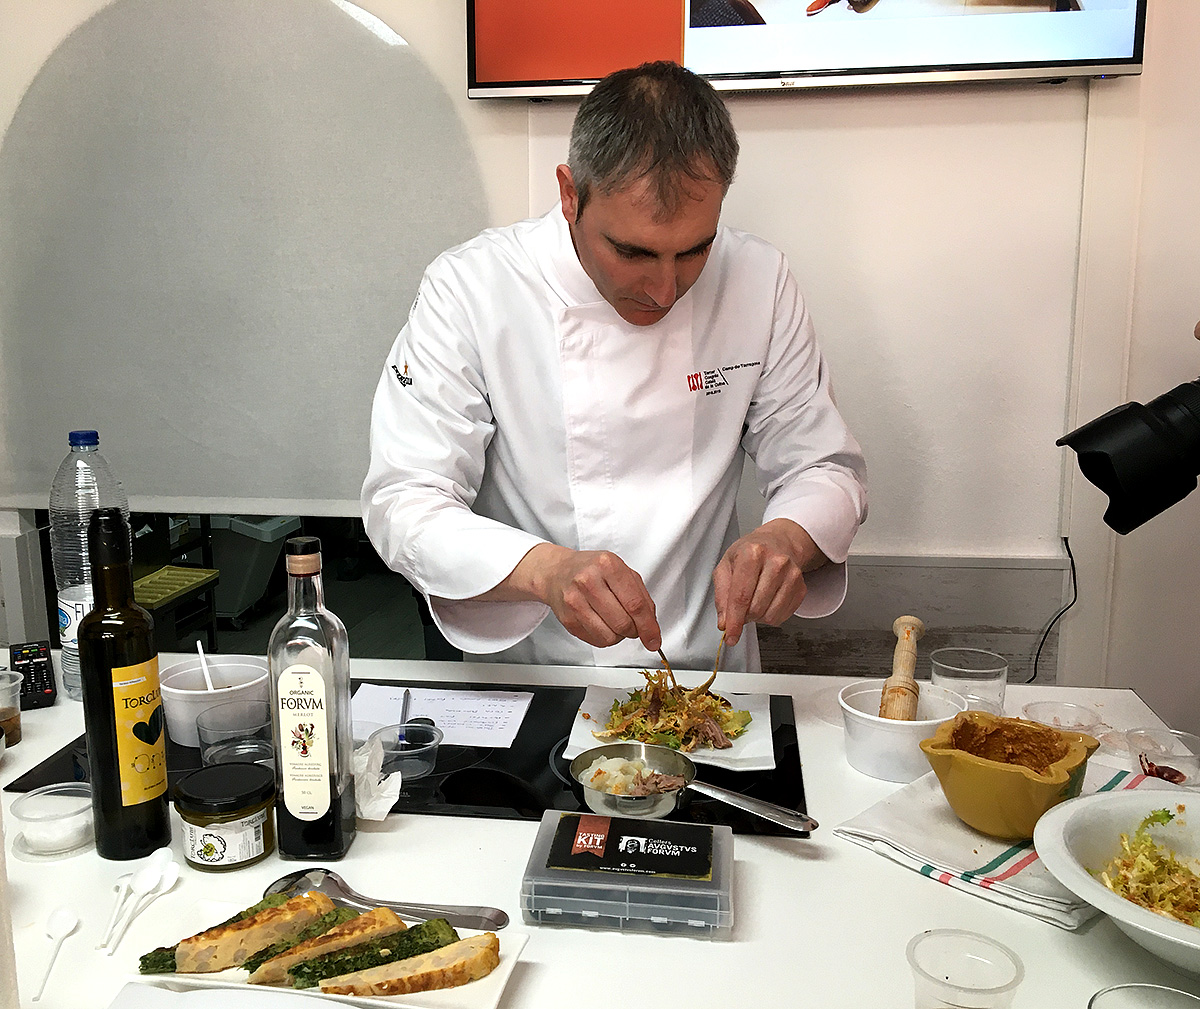 Jordi Guillem shows us his way with Xlota